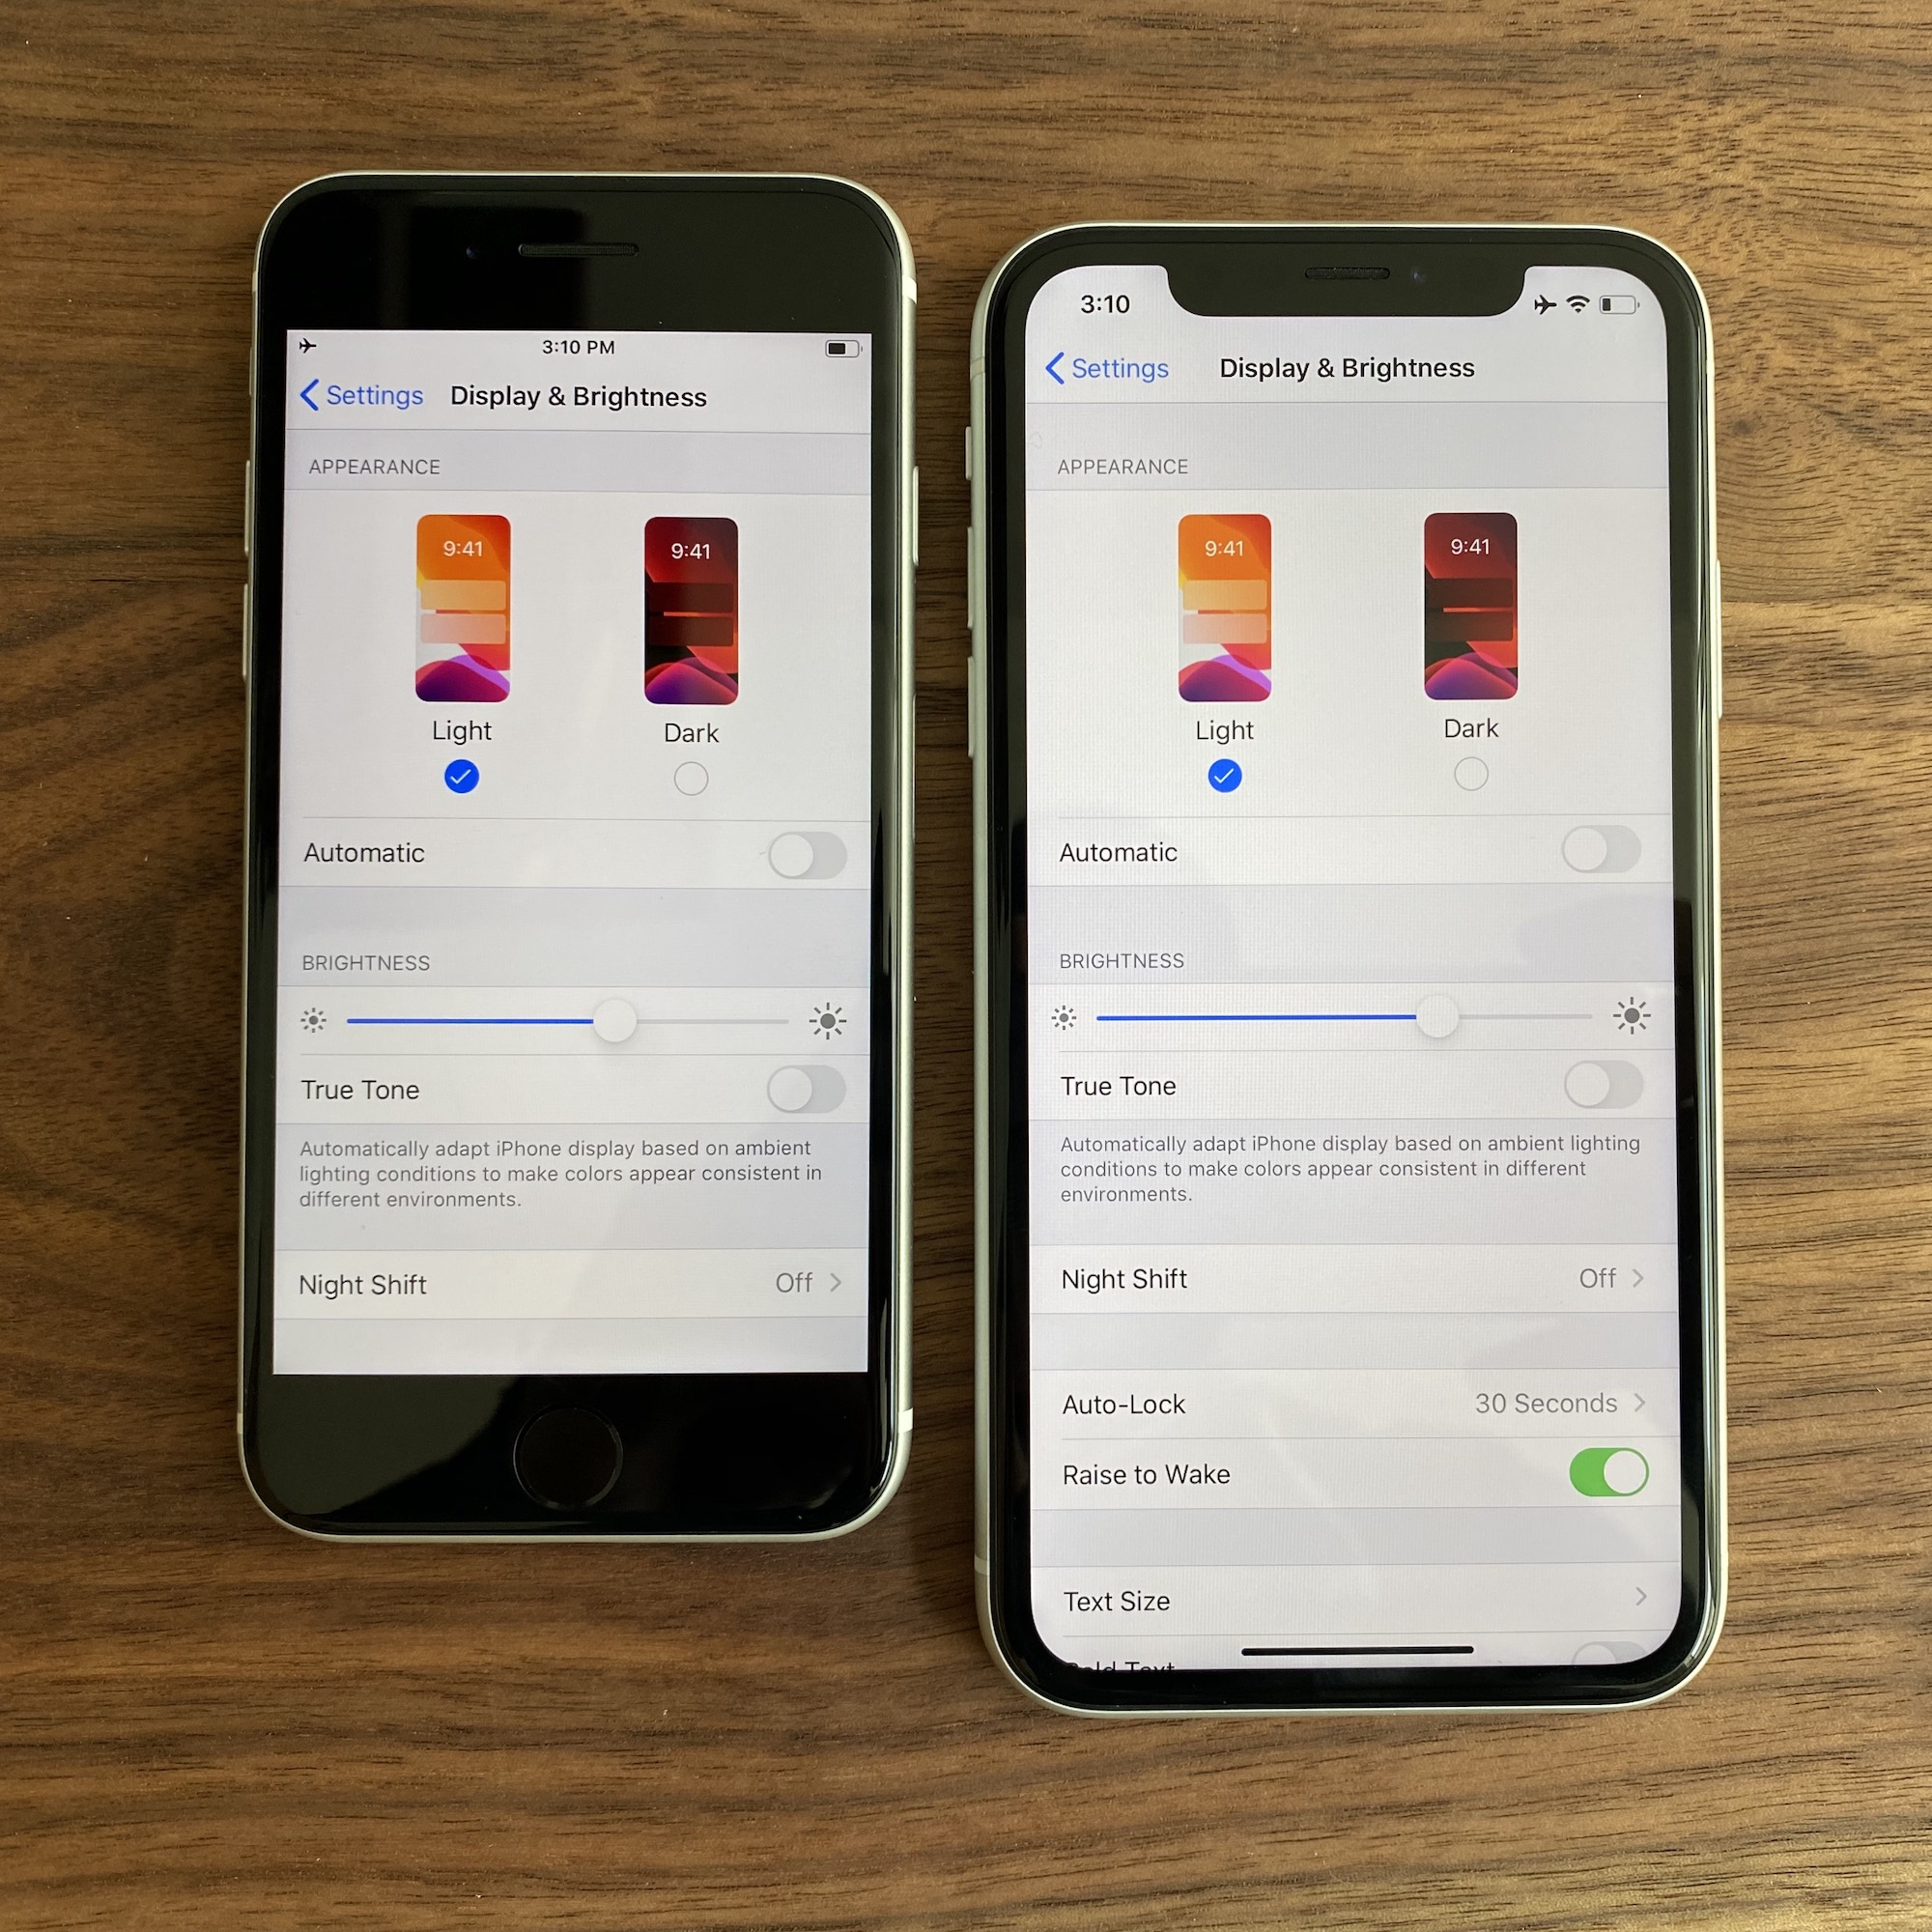 An iPhone SE next to an iPhone XR, both showing the Settings → Display and Brightness screen.